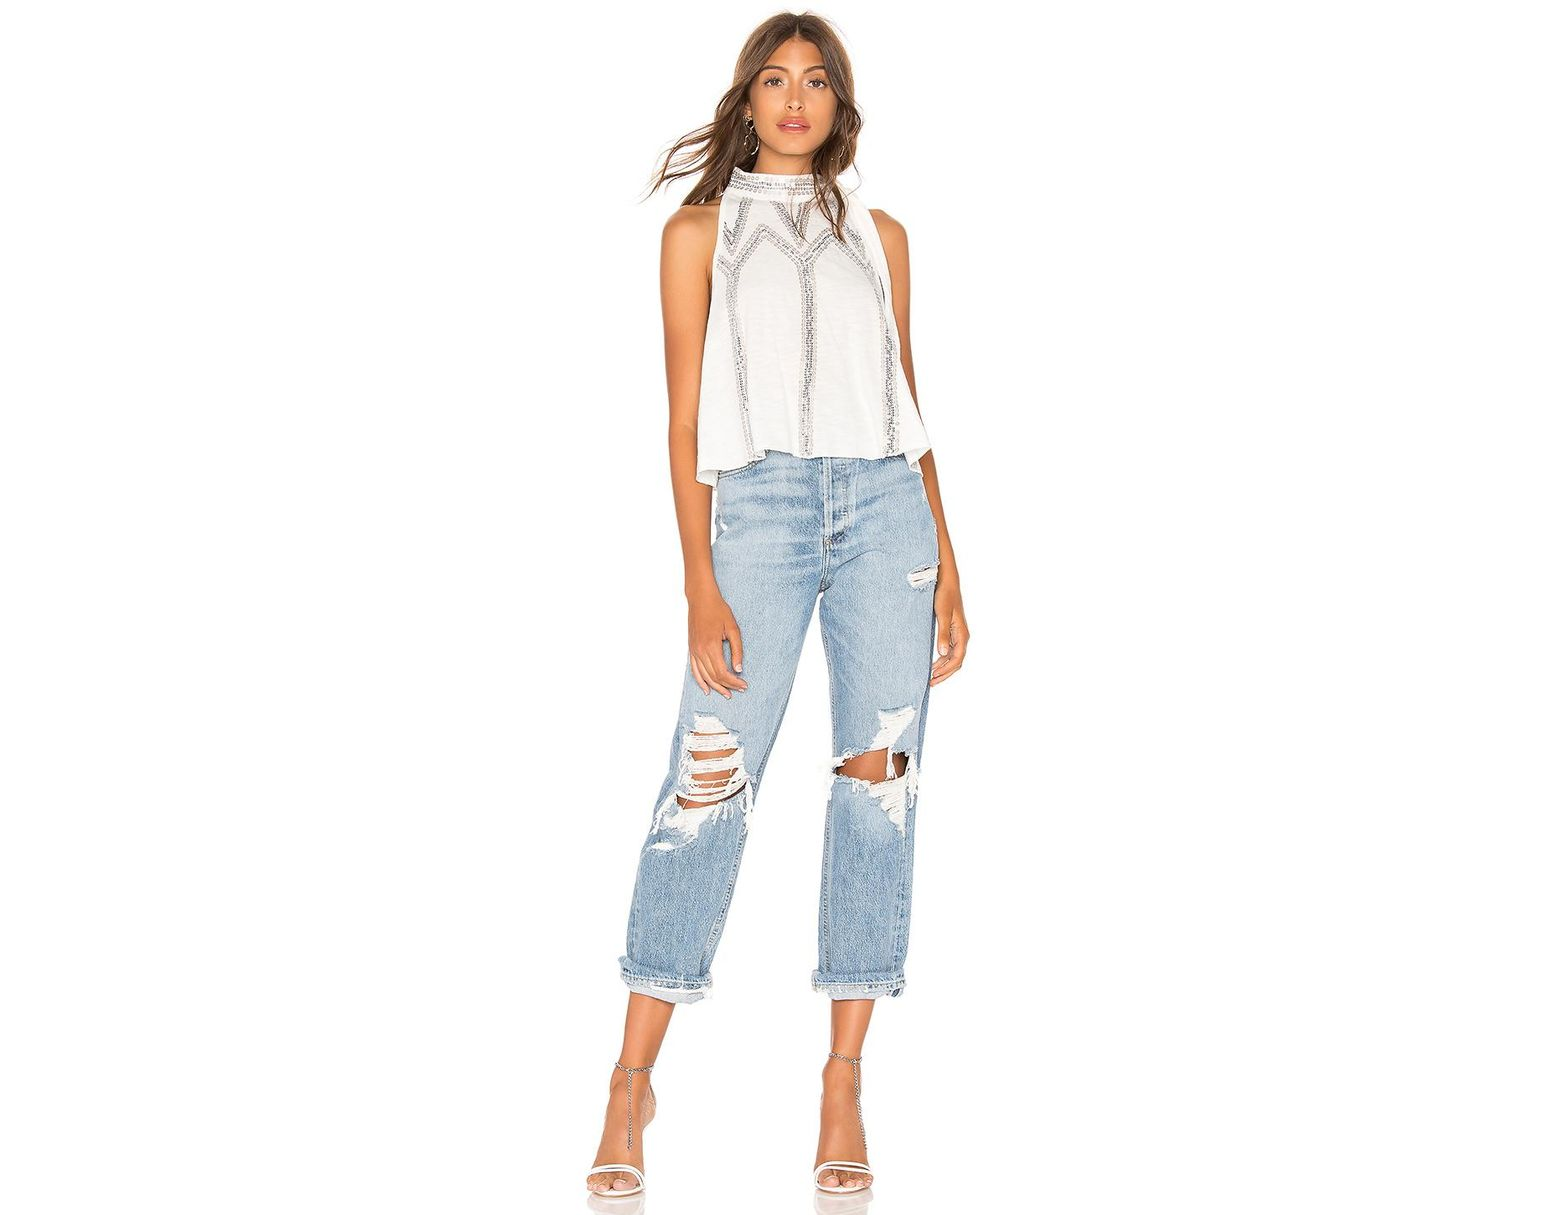 fb7bb07c295117 Free People Glitter City Top in White - Lyst